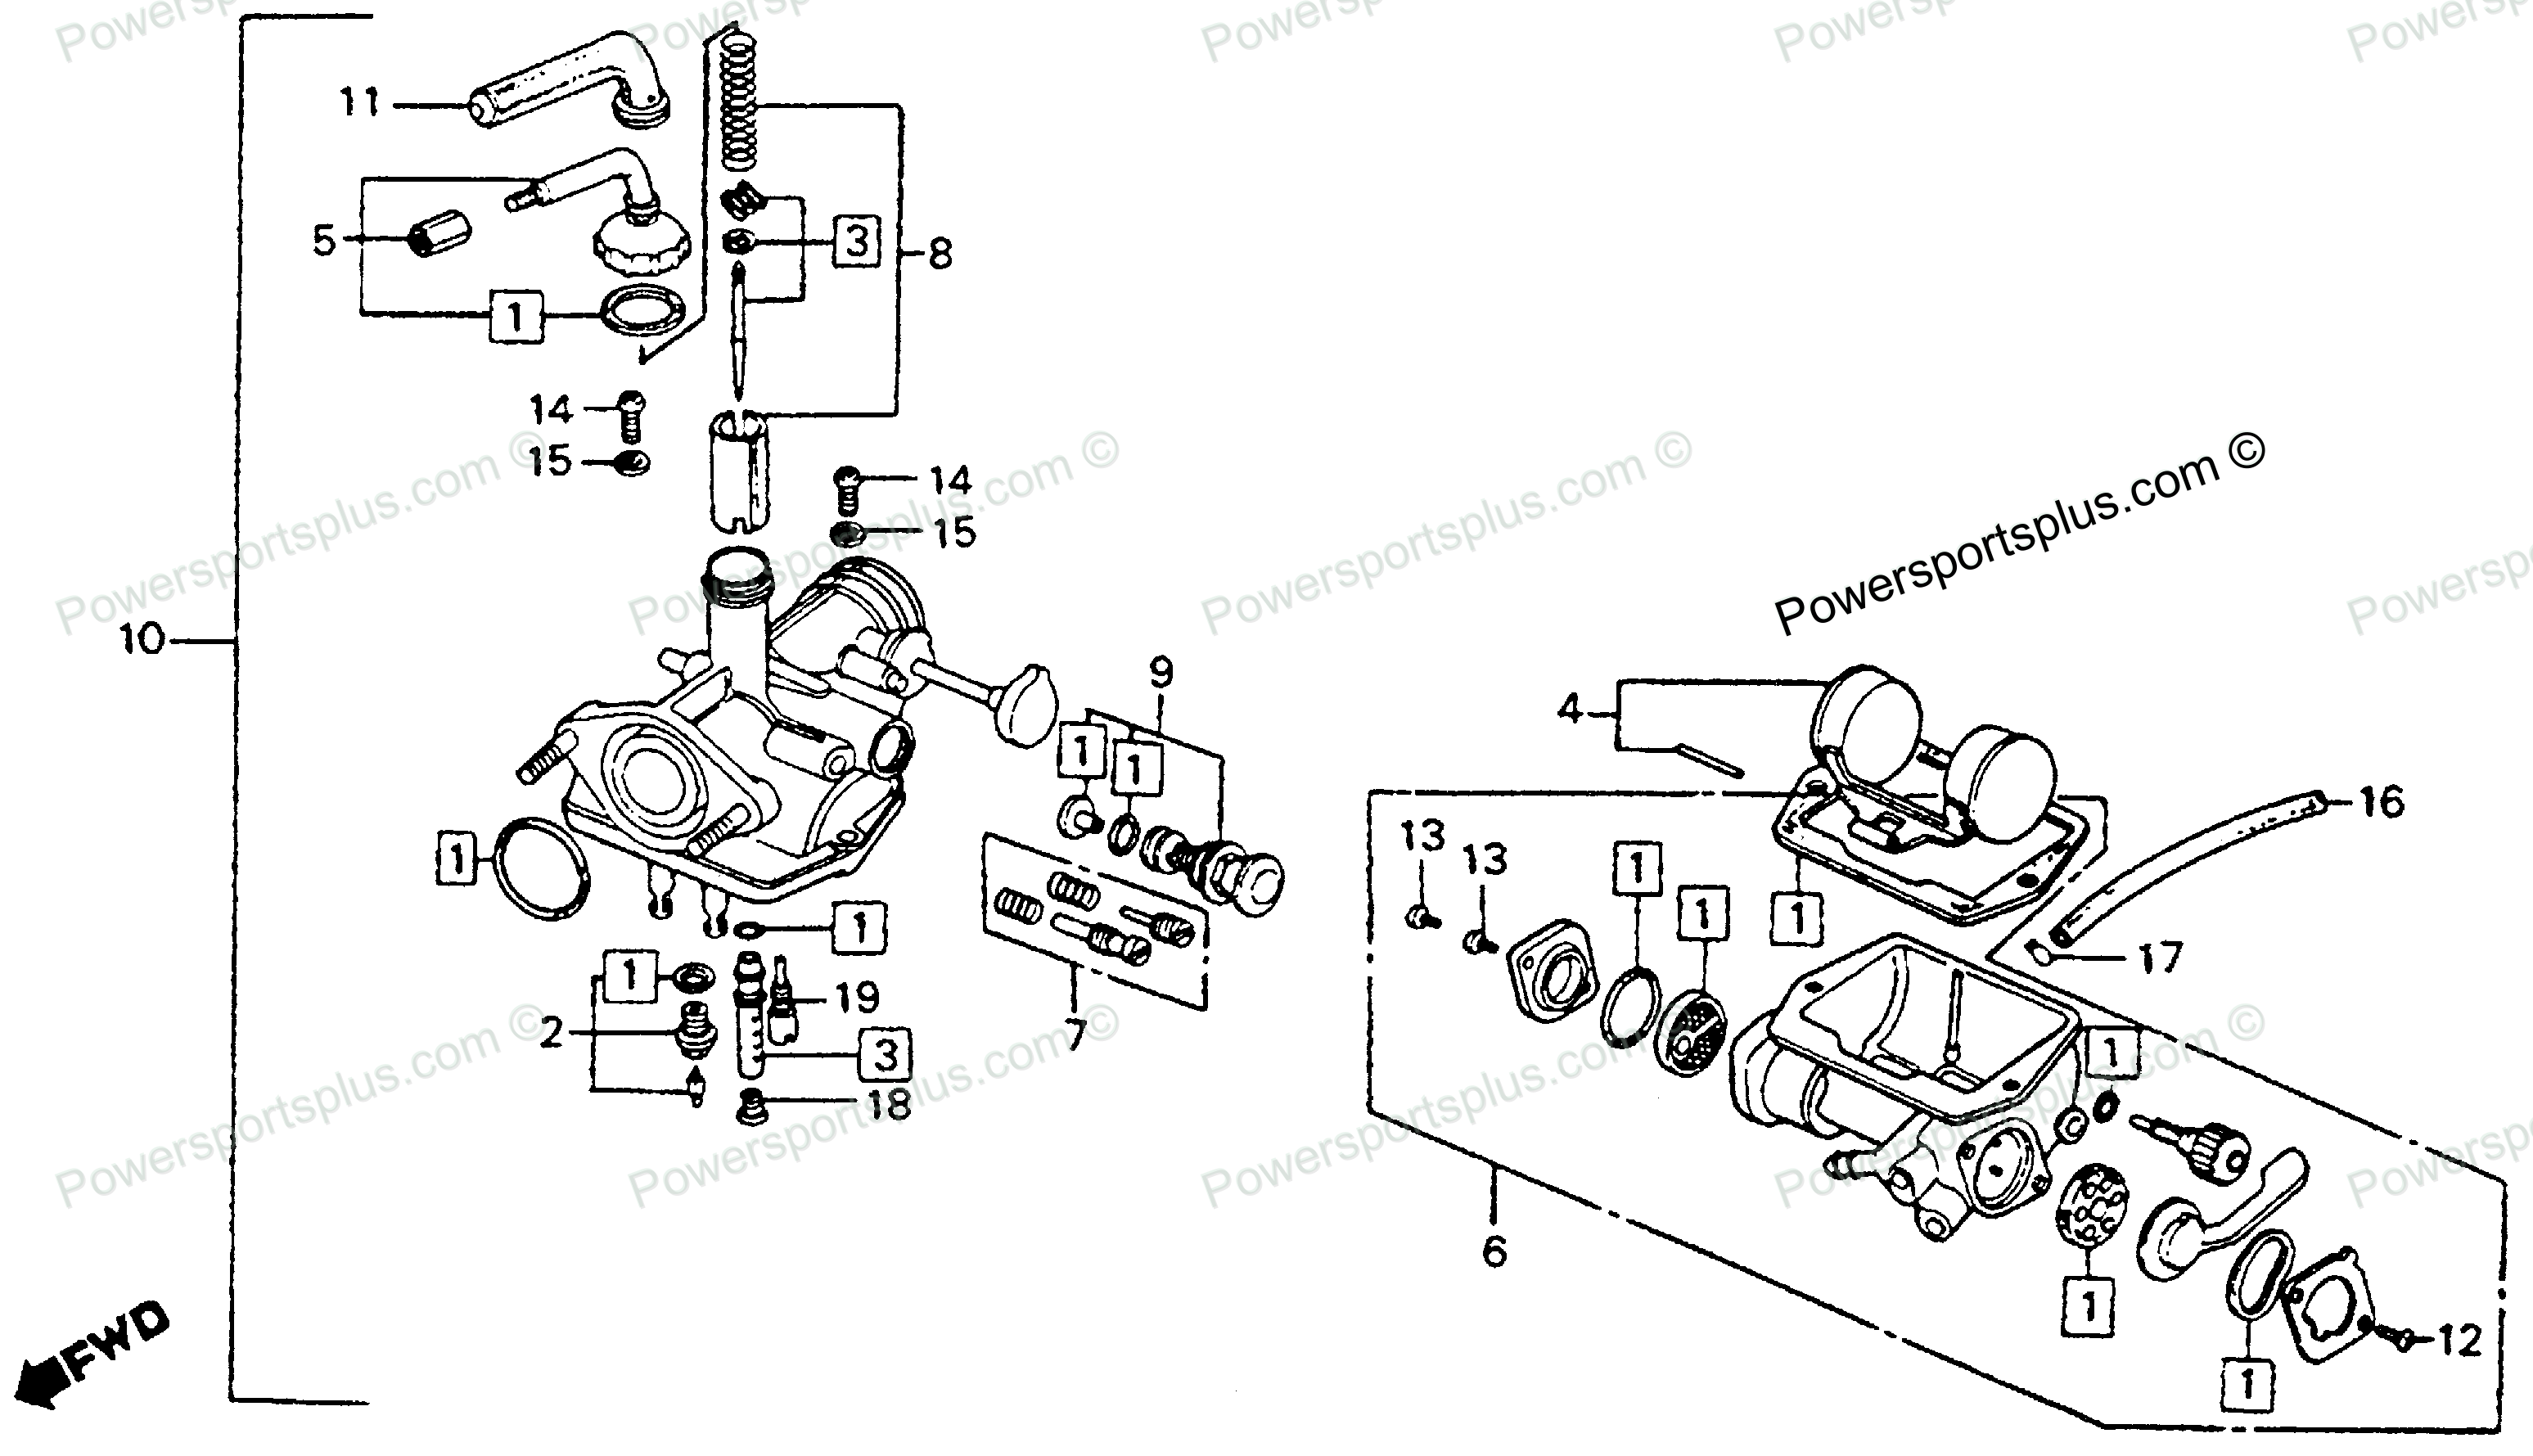 diagram of honda motorcycle parts 1976 ct90 a carburetor k6